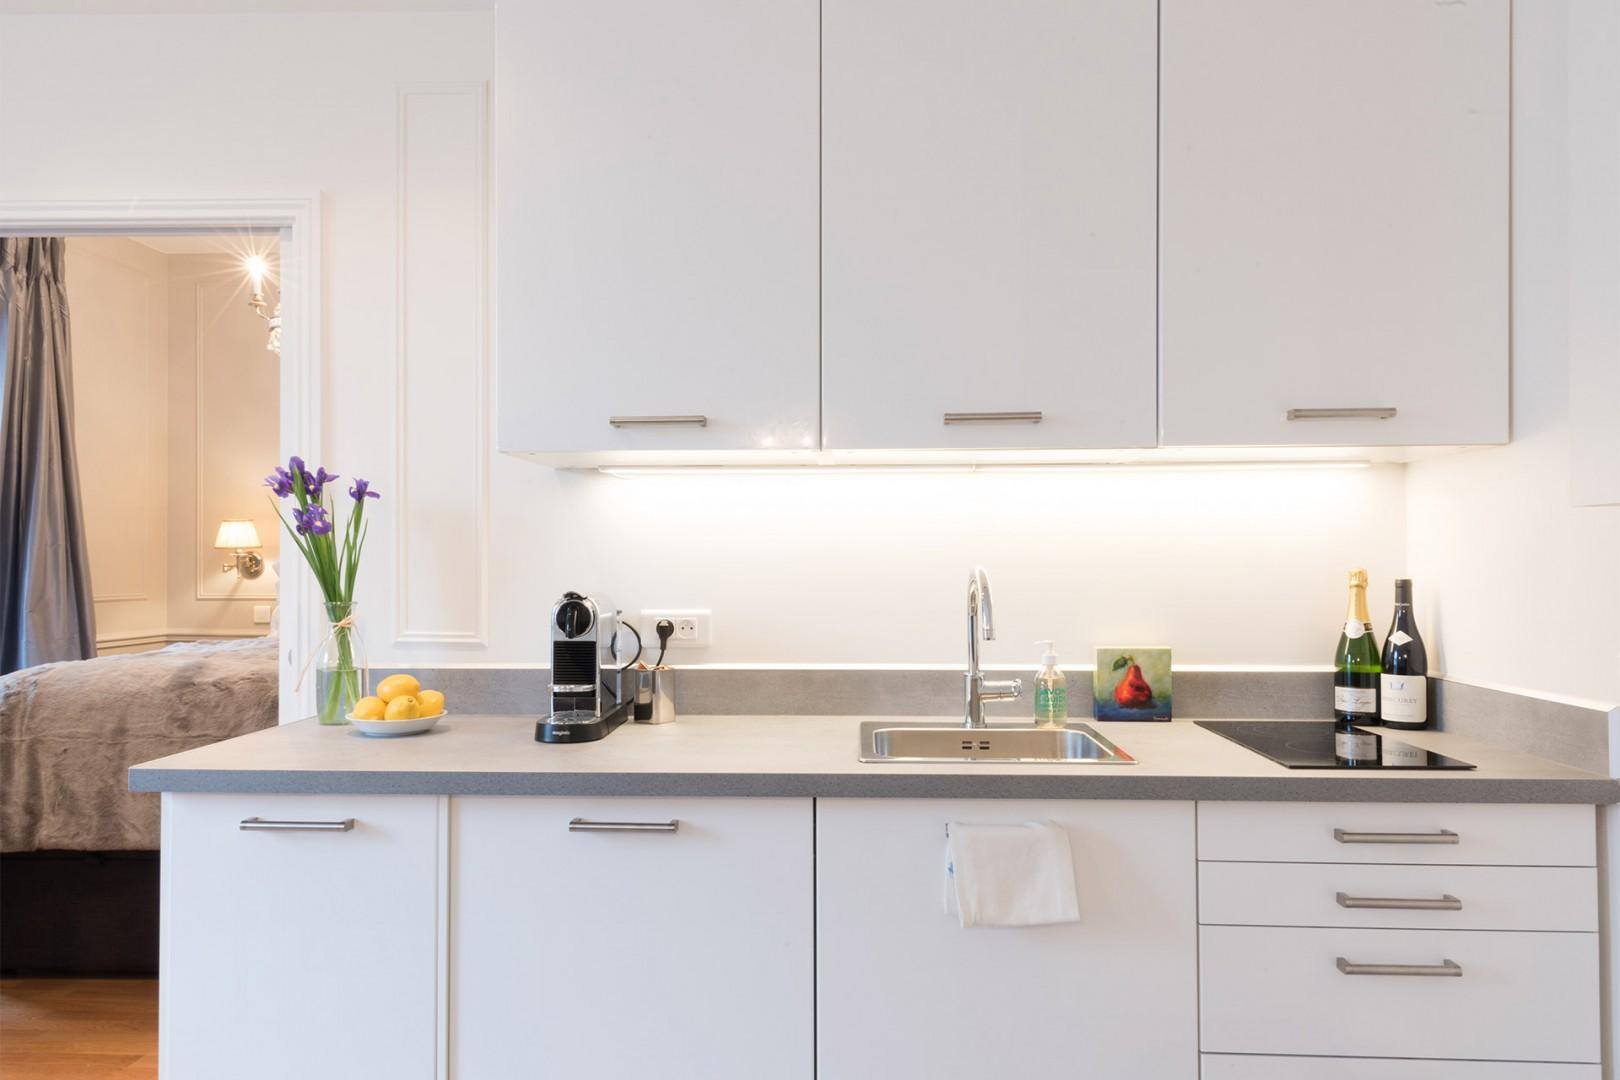 Enjoy cooking in this modern and efficient kitchen.